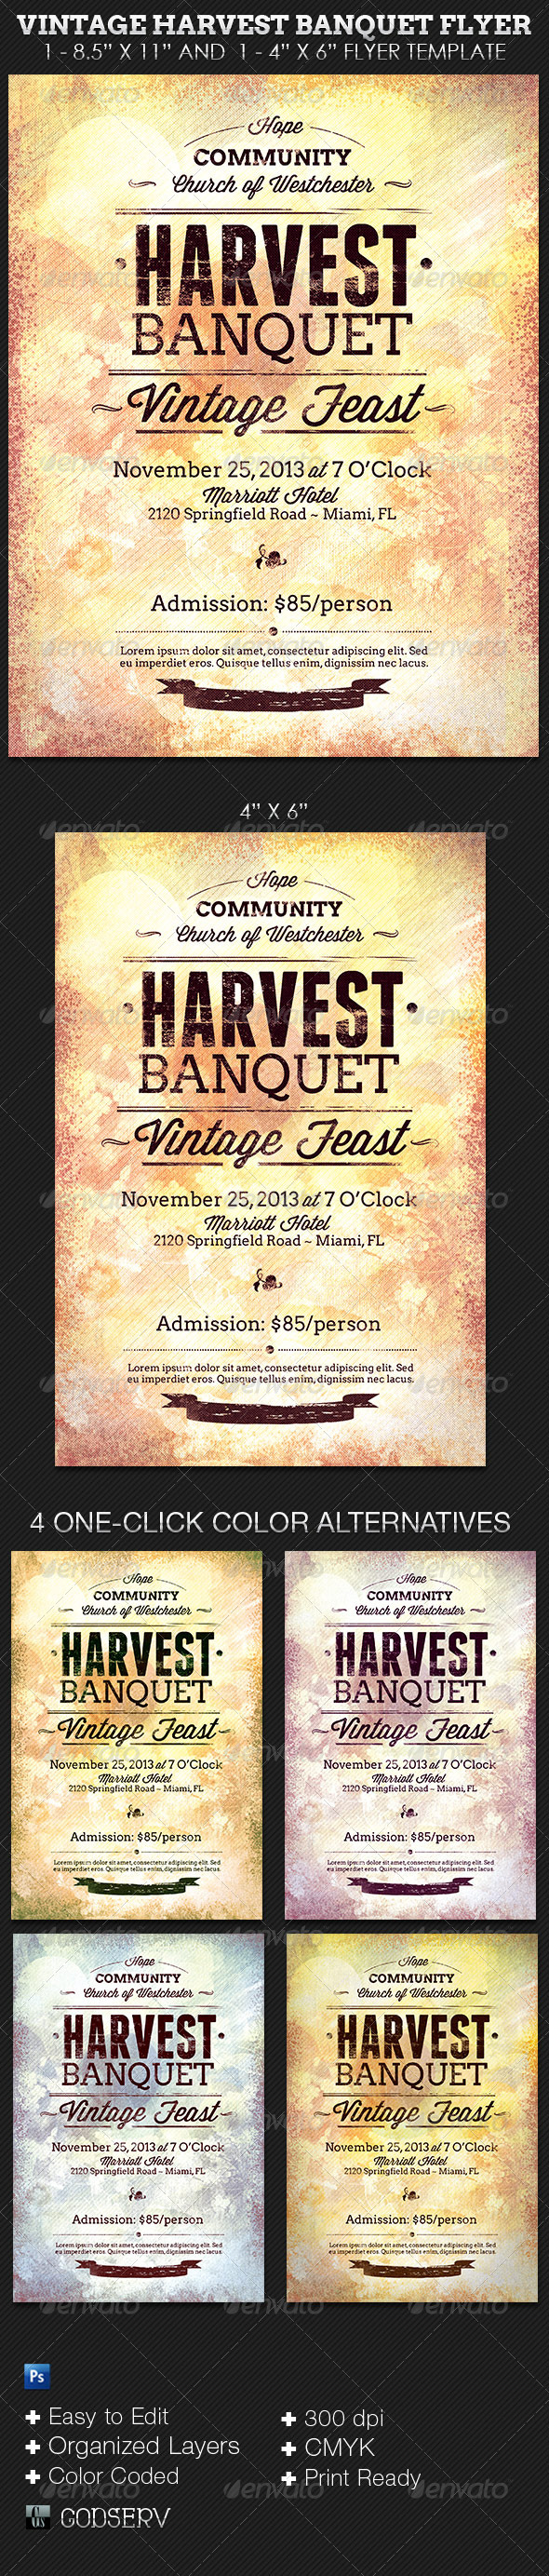 Vintage Harvest Banquet Flyer Template - Church Flyers